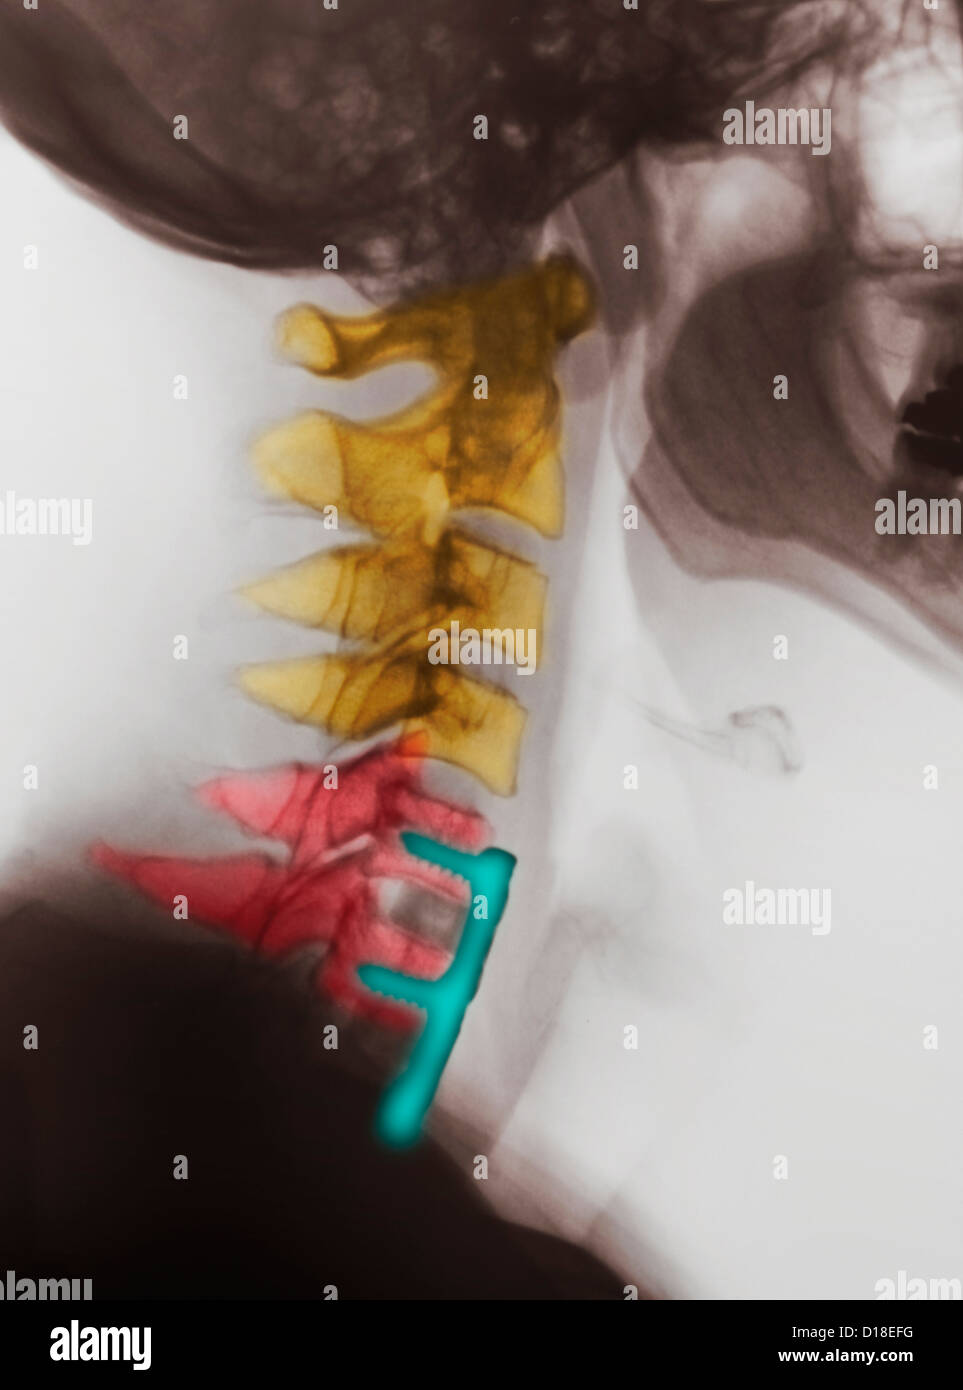 Cervical xray showing spinal fusion, C5, C6, C7 - Stock Image